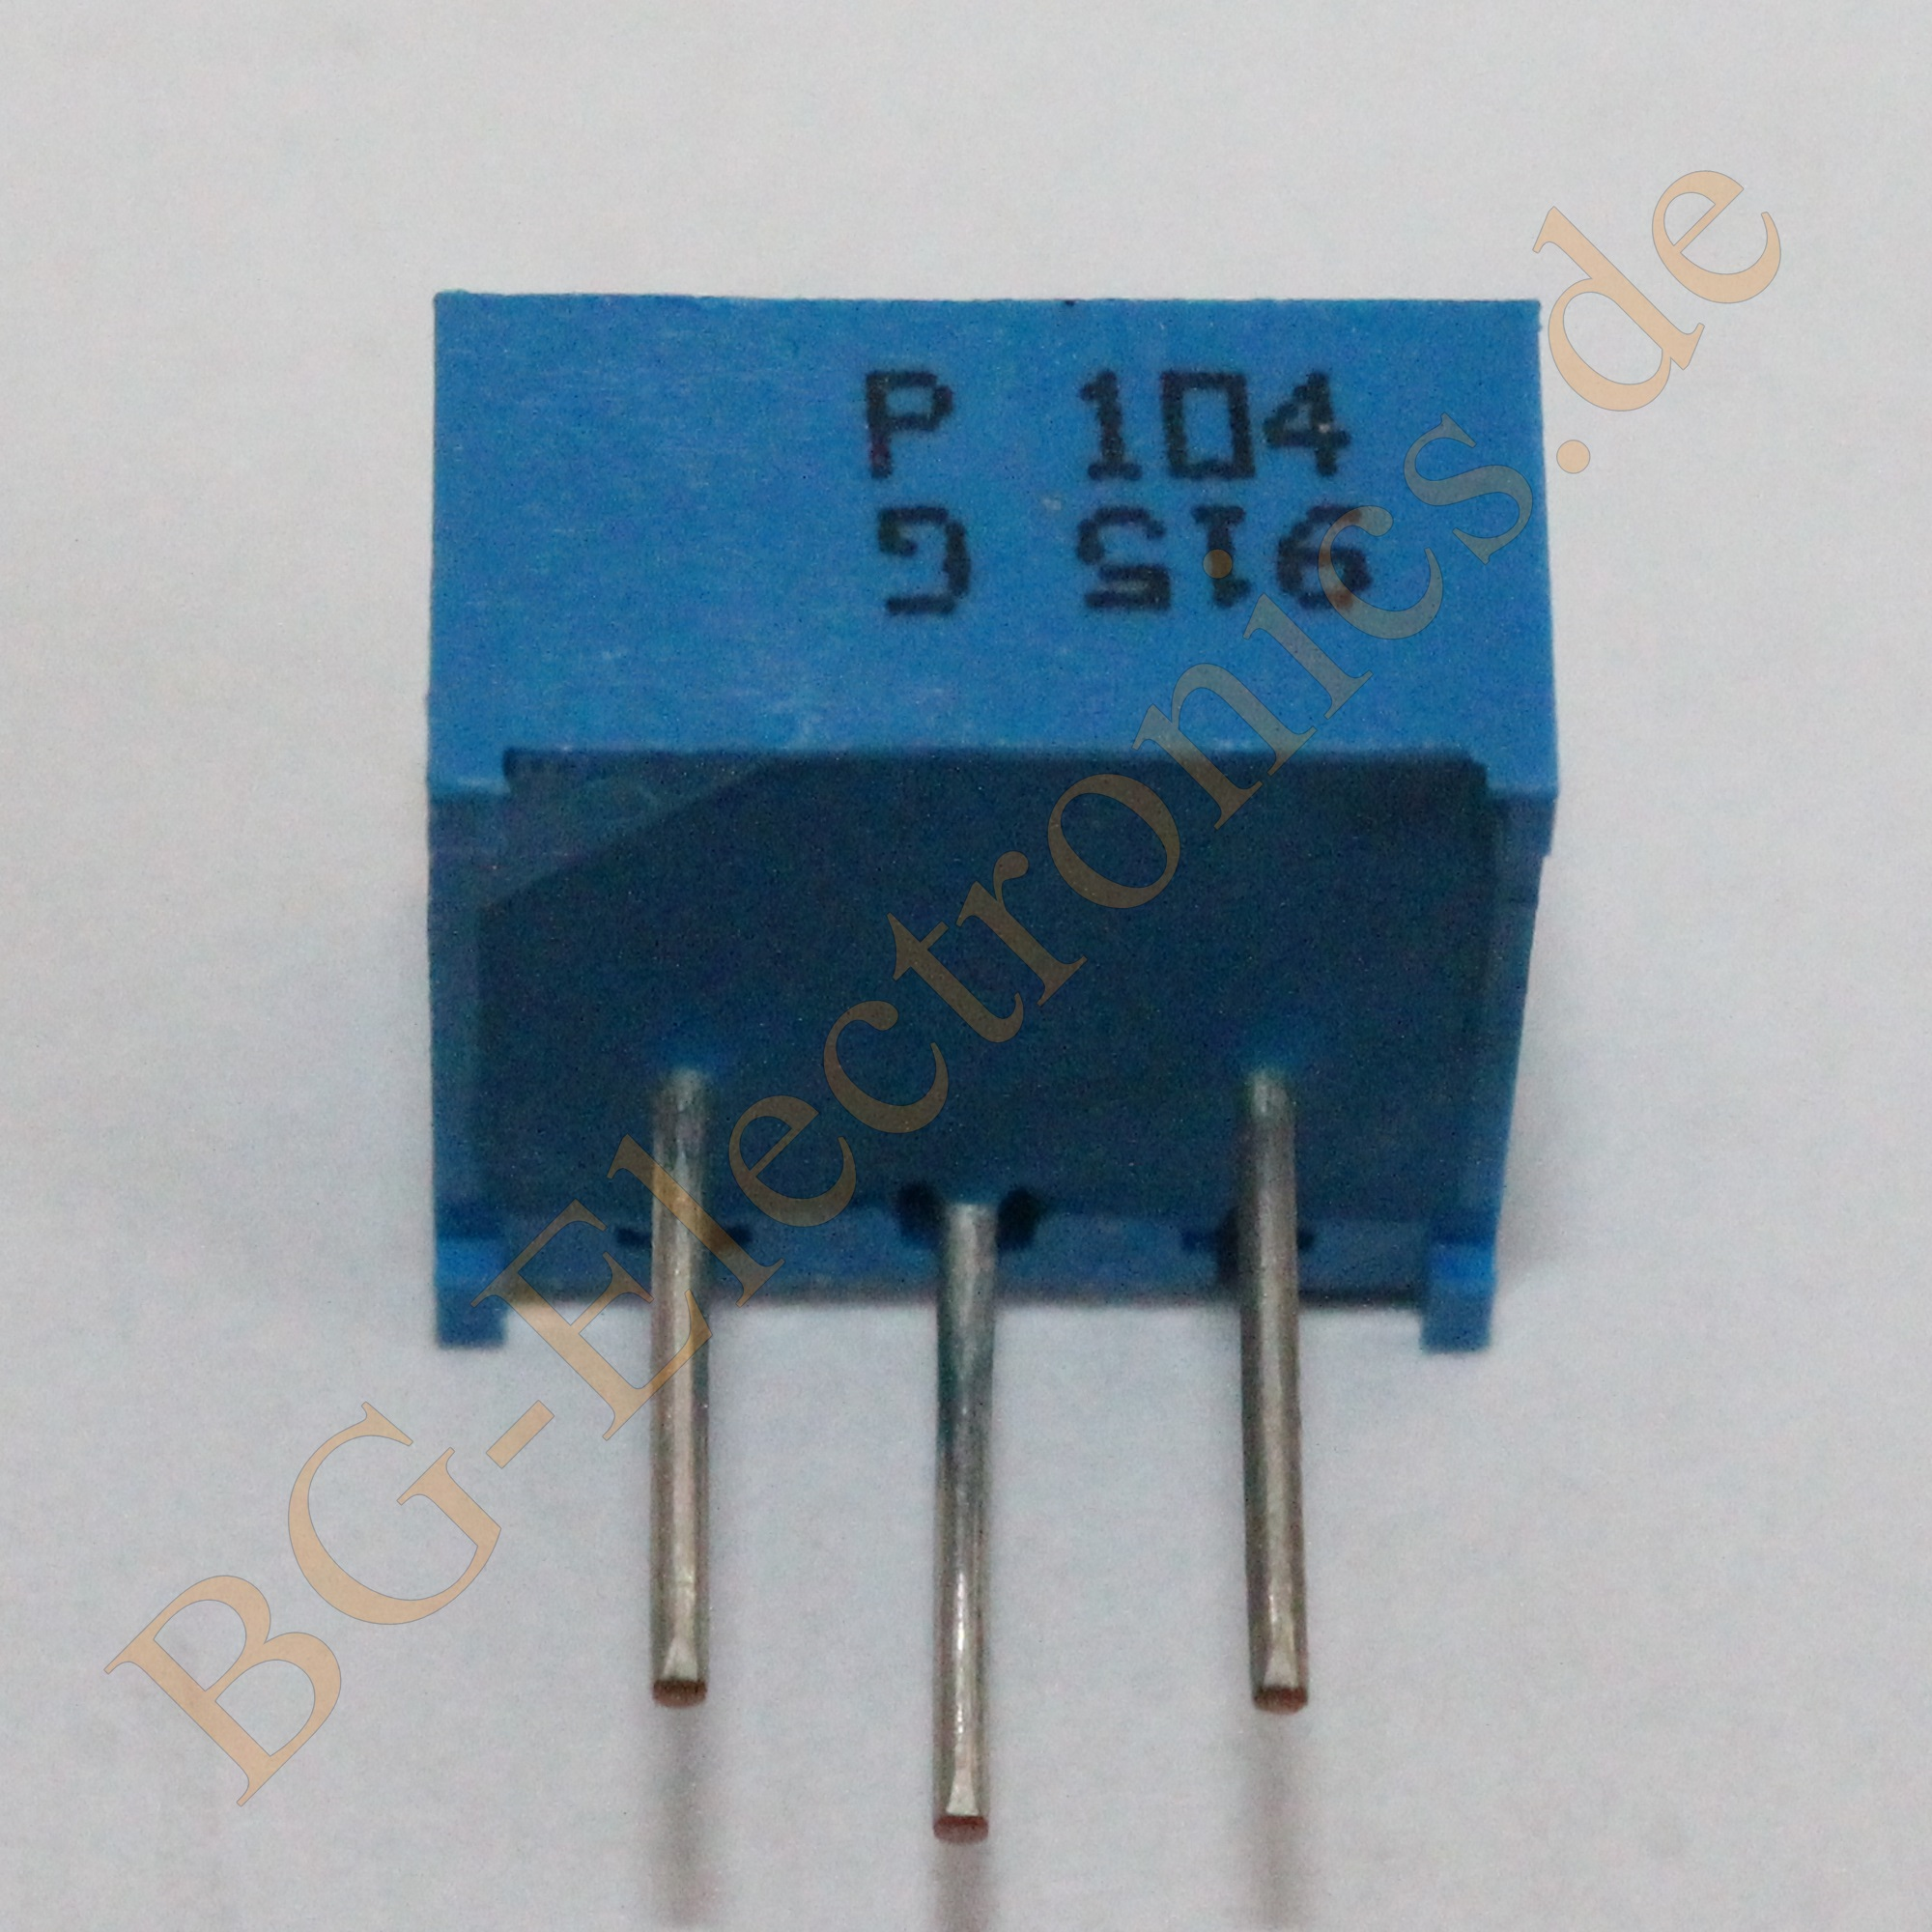 Trimmer 100 KΩ ligend gekapselt